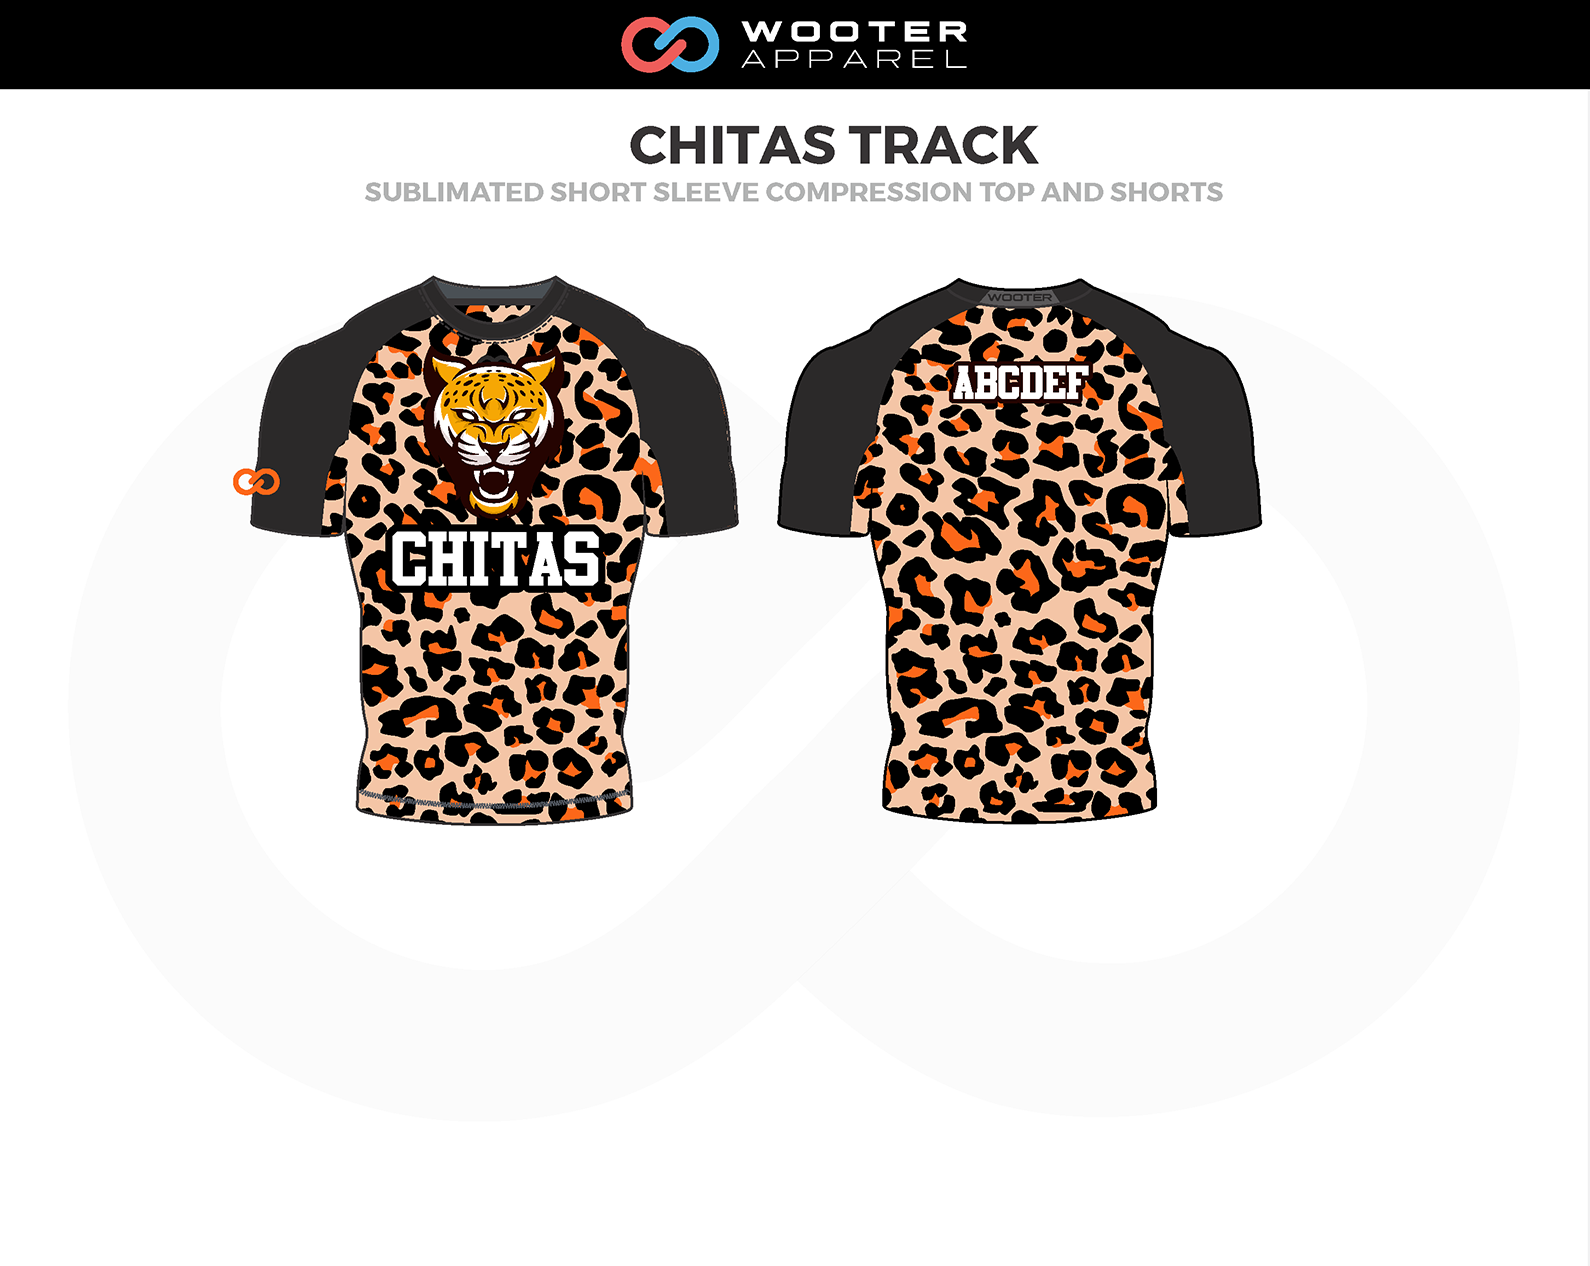 chitas track_Page_1.png